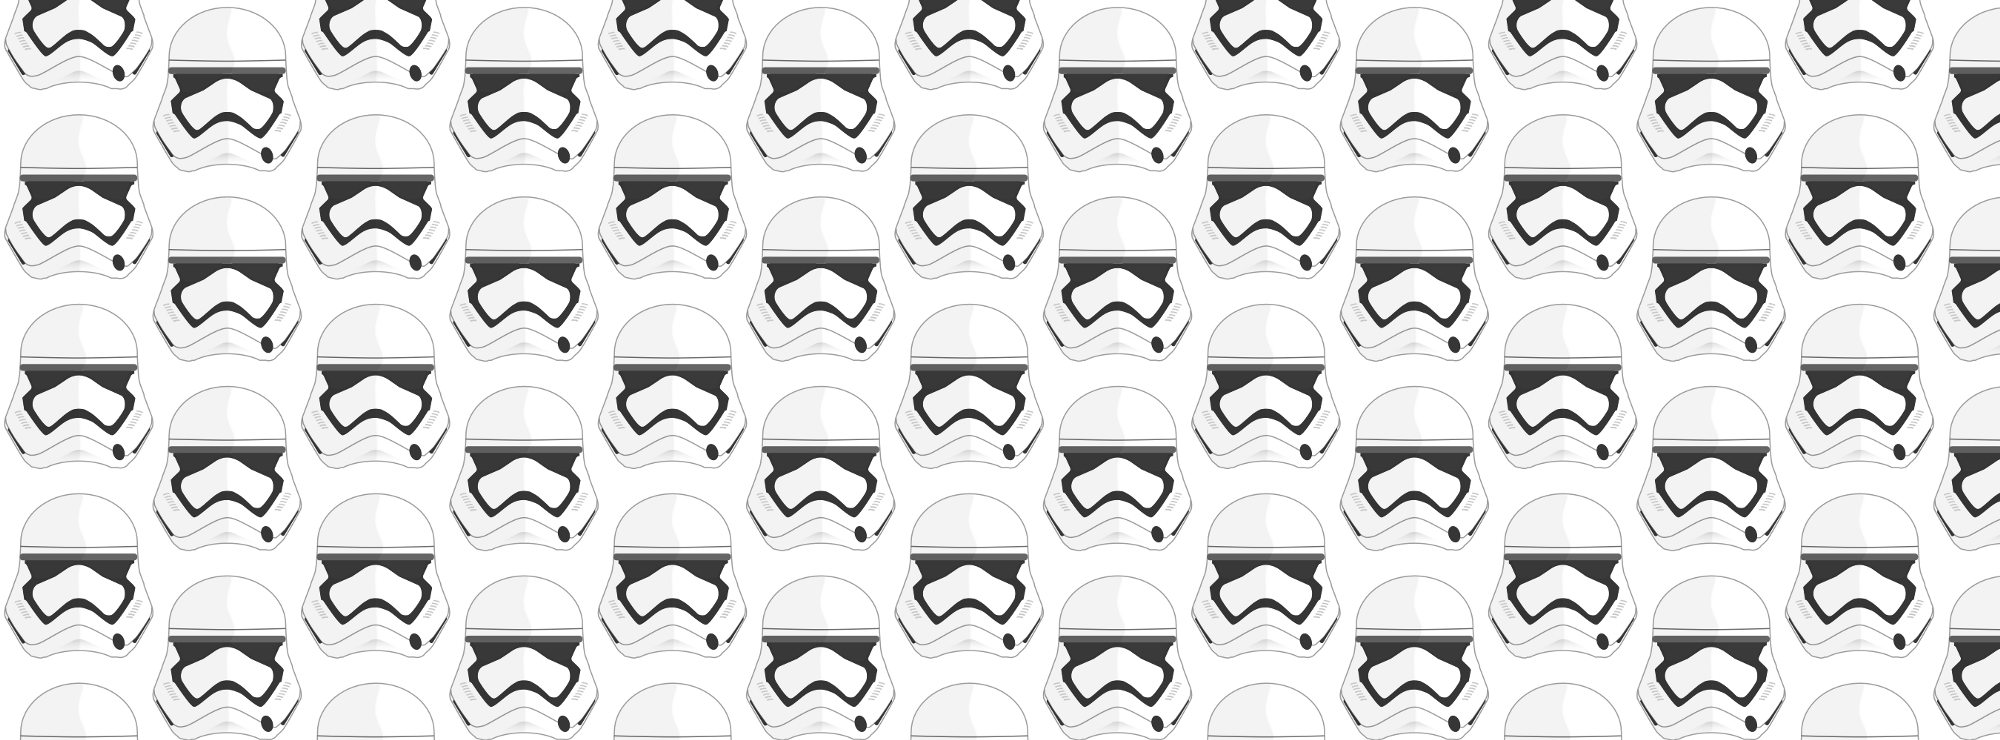 exploring shapes to create star wars characters a guide for non